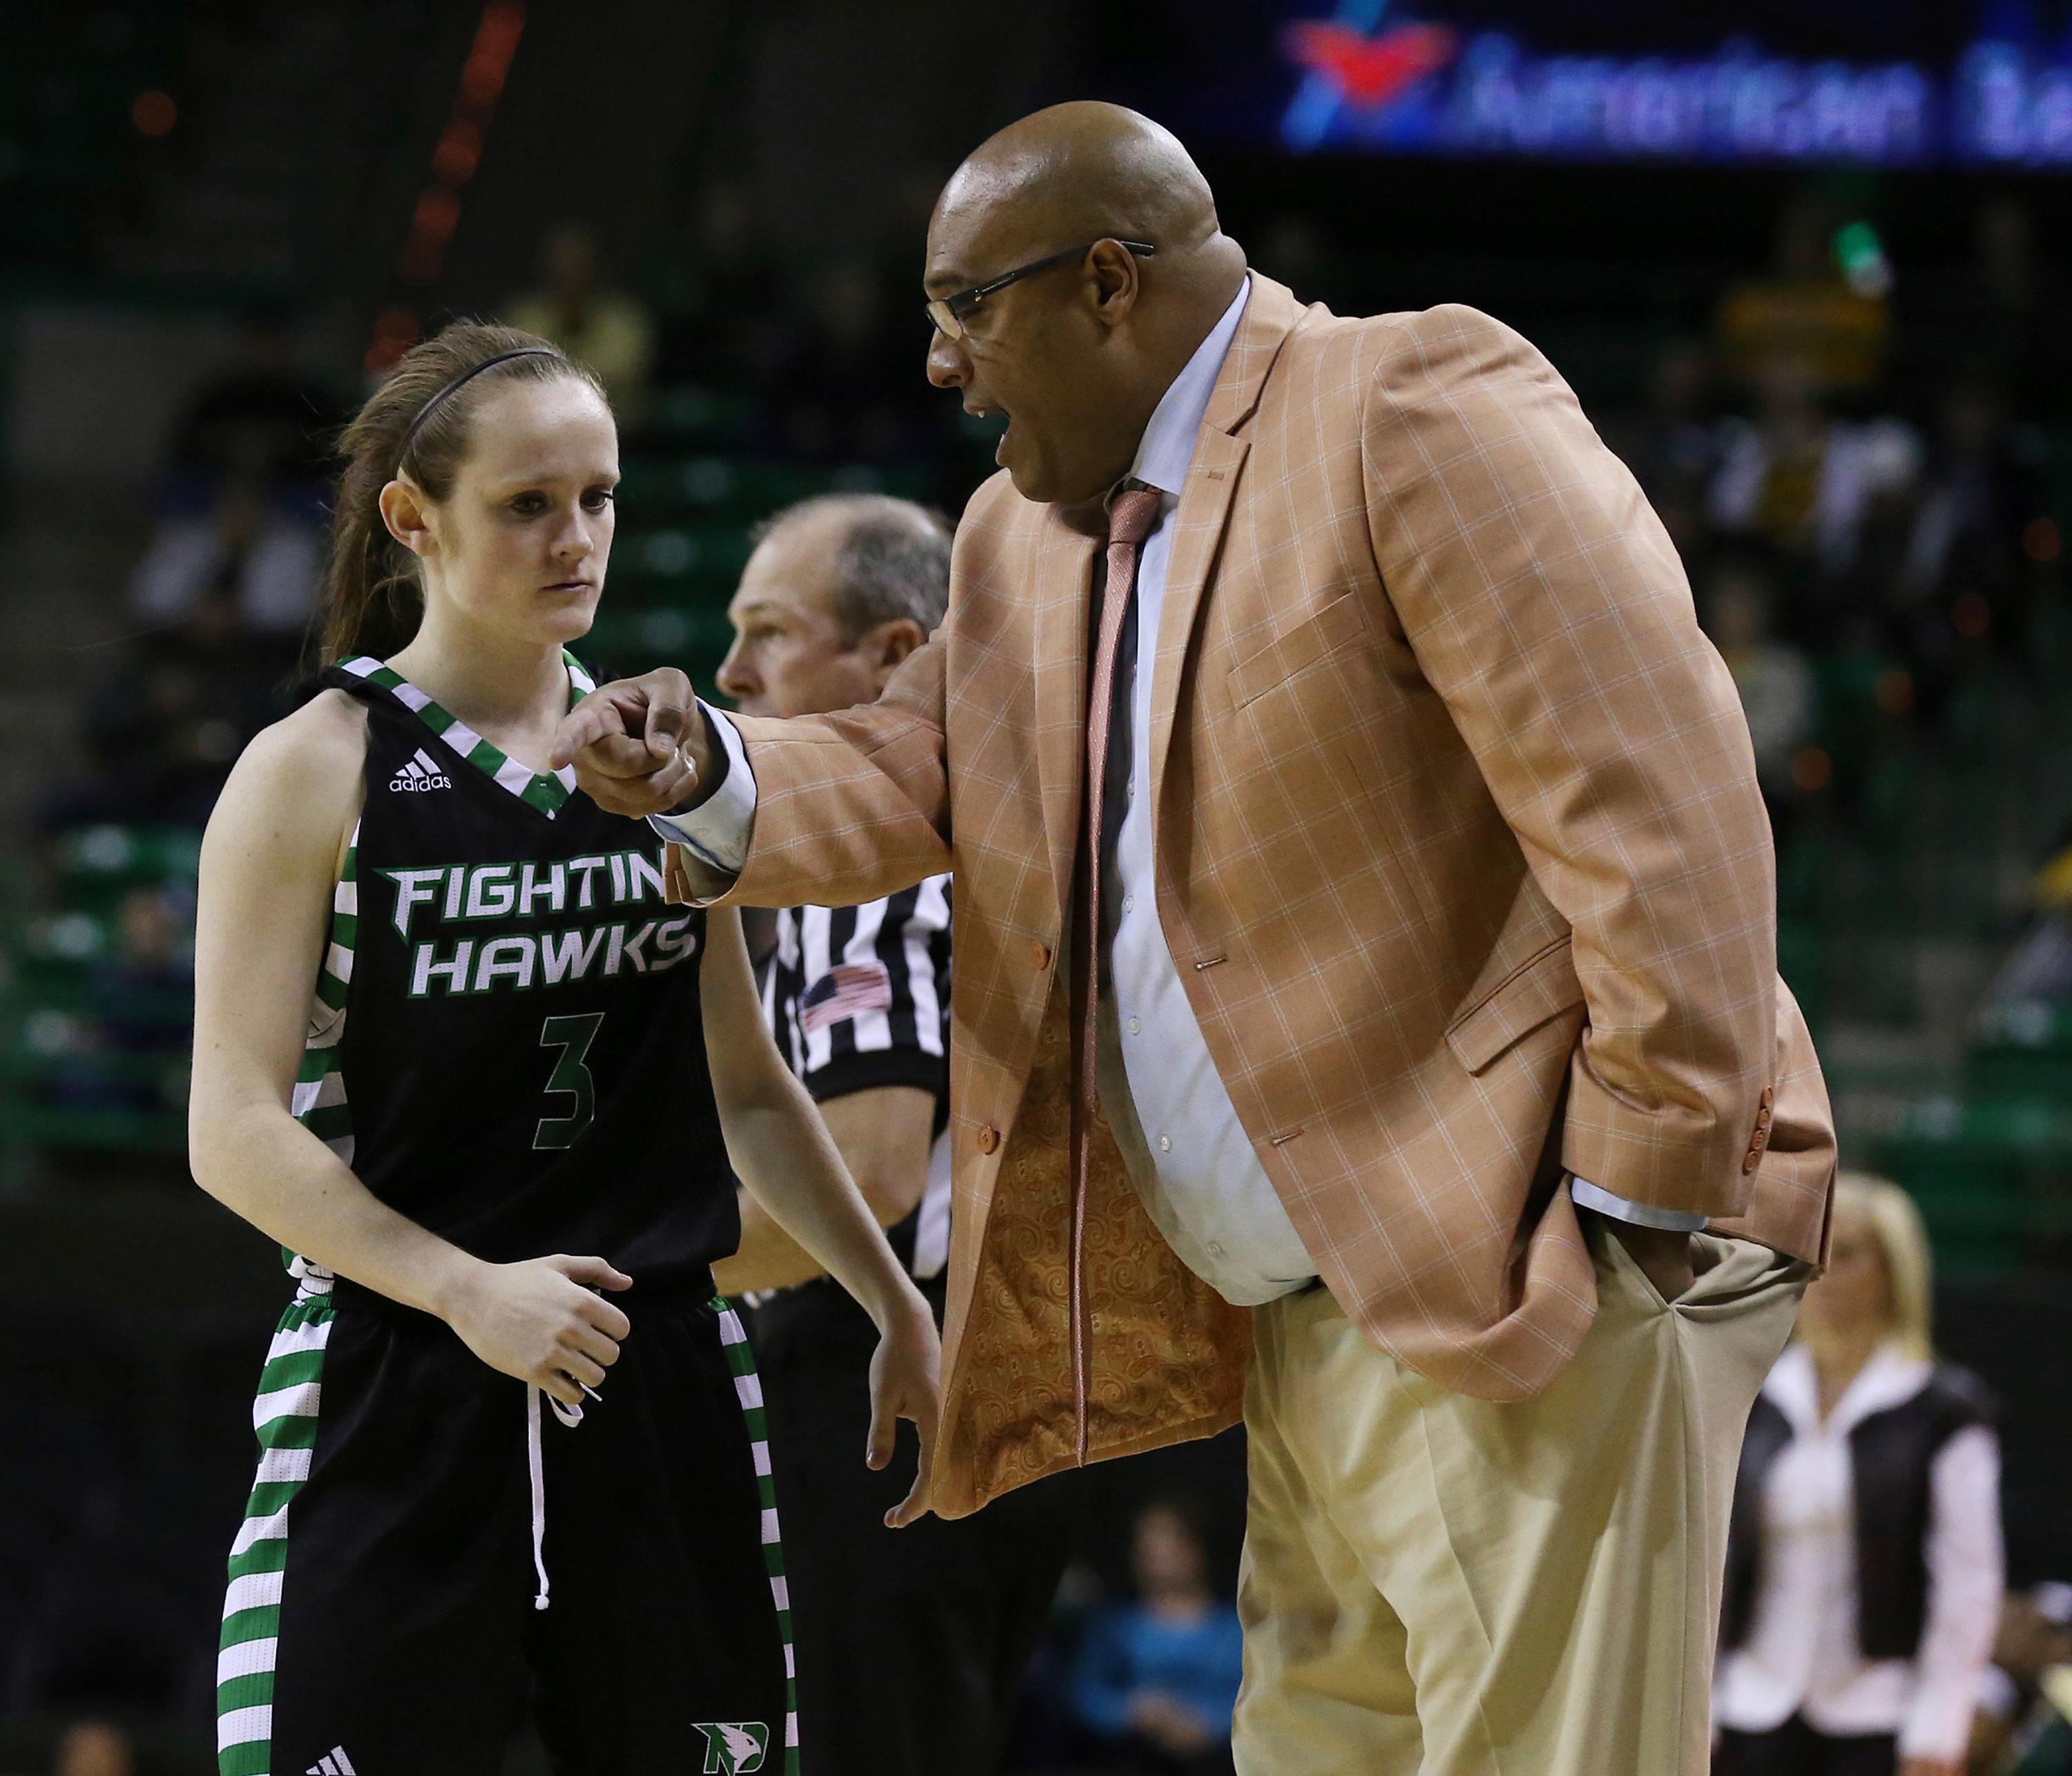 North Dakota coach Travis Brewster, right, talks with guard Melissa Dailey, left, during a timeout in the first half of an NCAA college basketball game against Baylor, Tuesday, Dec. 5, 2017, in Waco, Texas. (Rod Aydelotte/Waco Tribune Herald via AP)